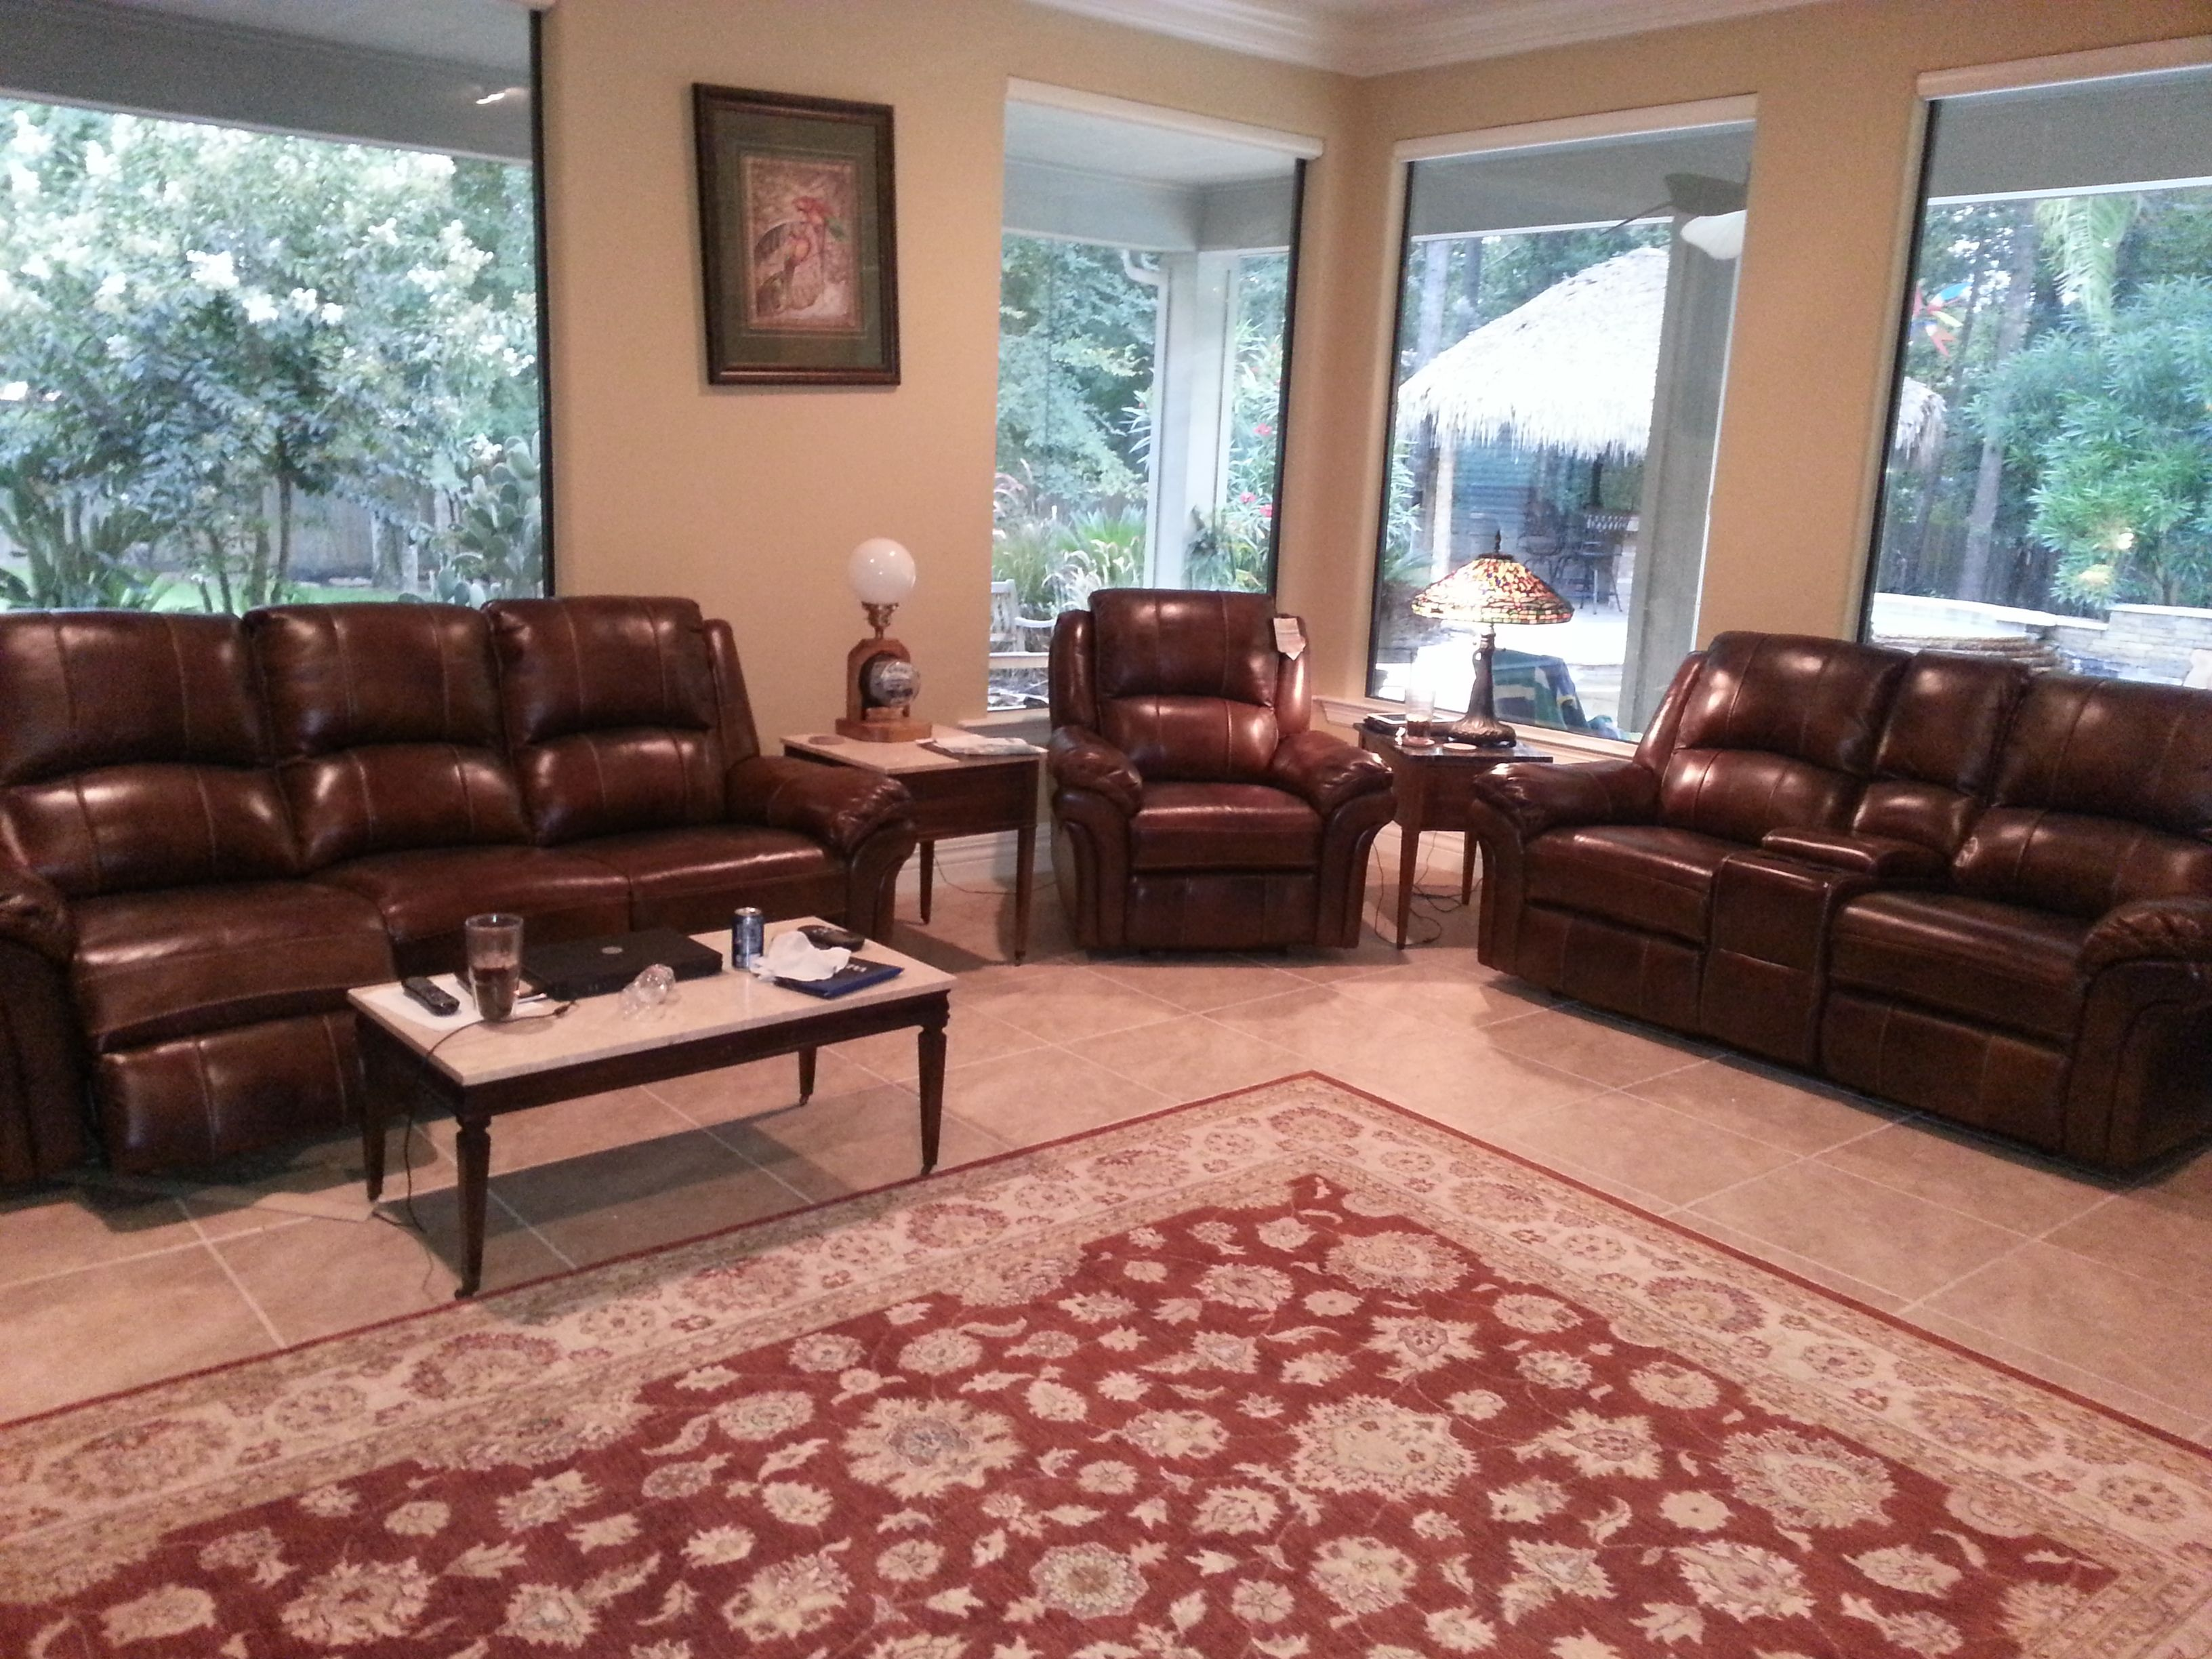 A magnolia tx family fell in love with this flexsteel dandridge living room set from gallery furniture houston tx